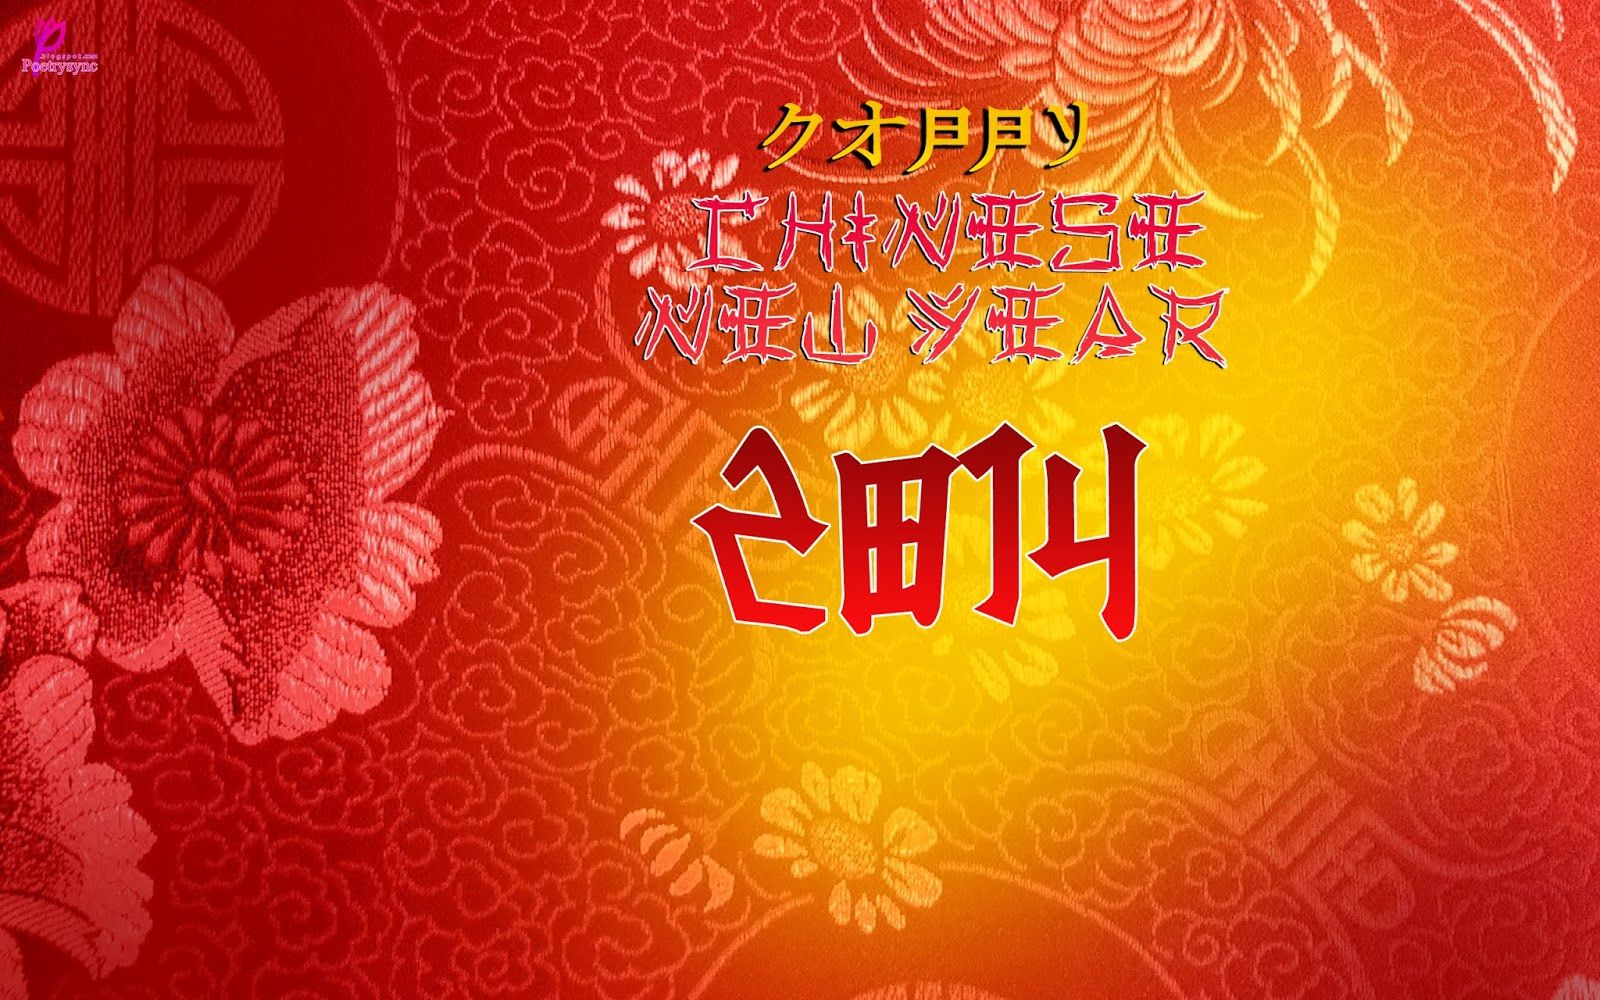 Chinese New Year Greetings Sms New Year Wishes In China Wallpaper For Background Desktop Chinese New Year Greeting Happy New Year Greetings New Year Wishes